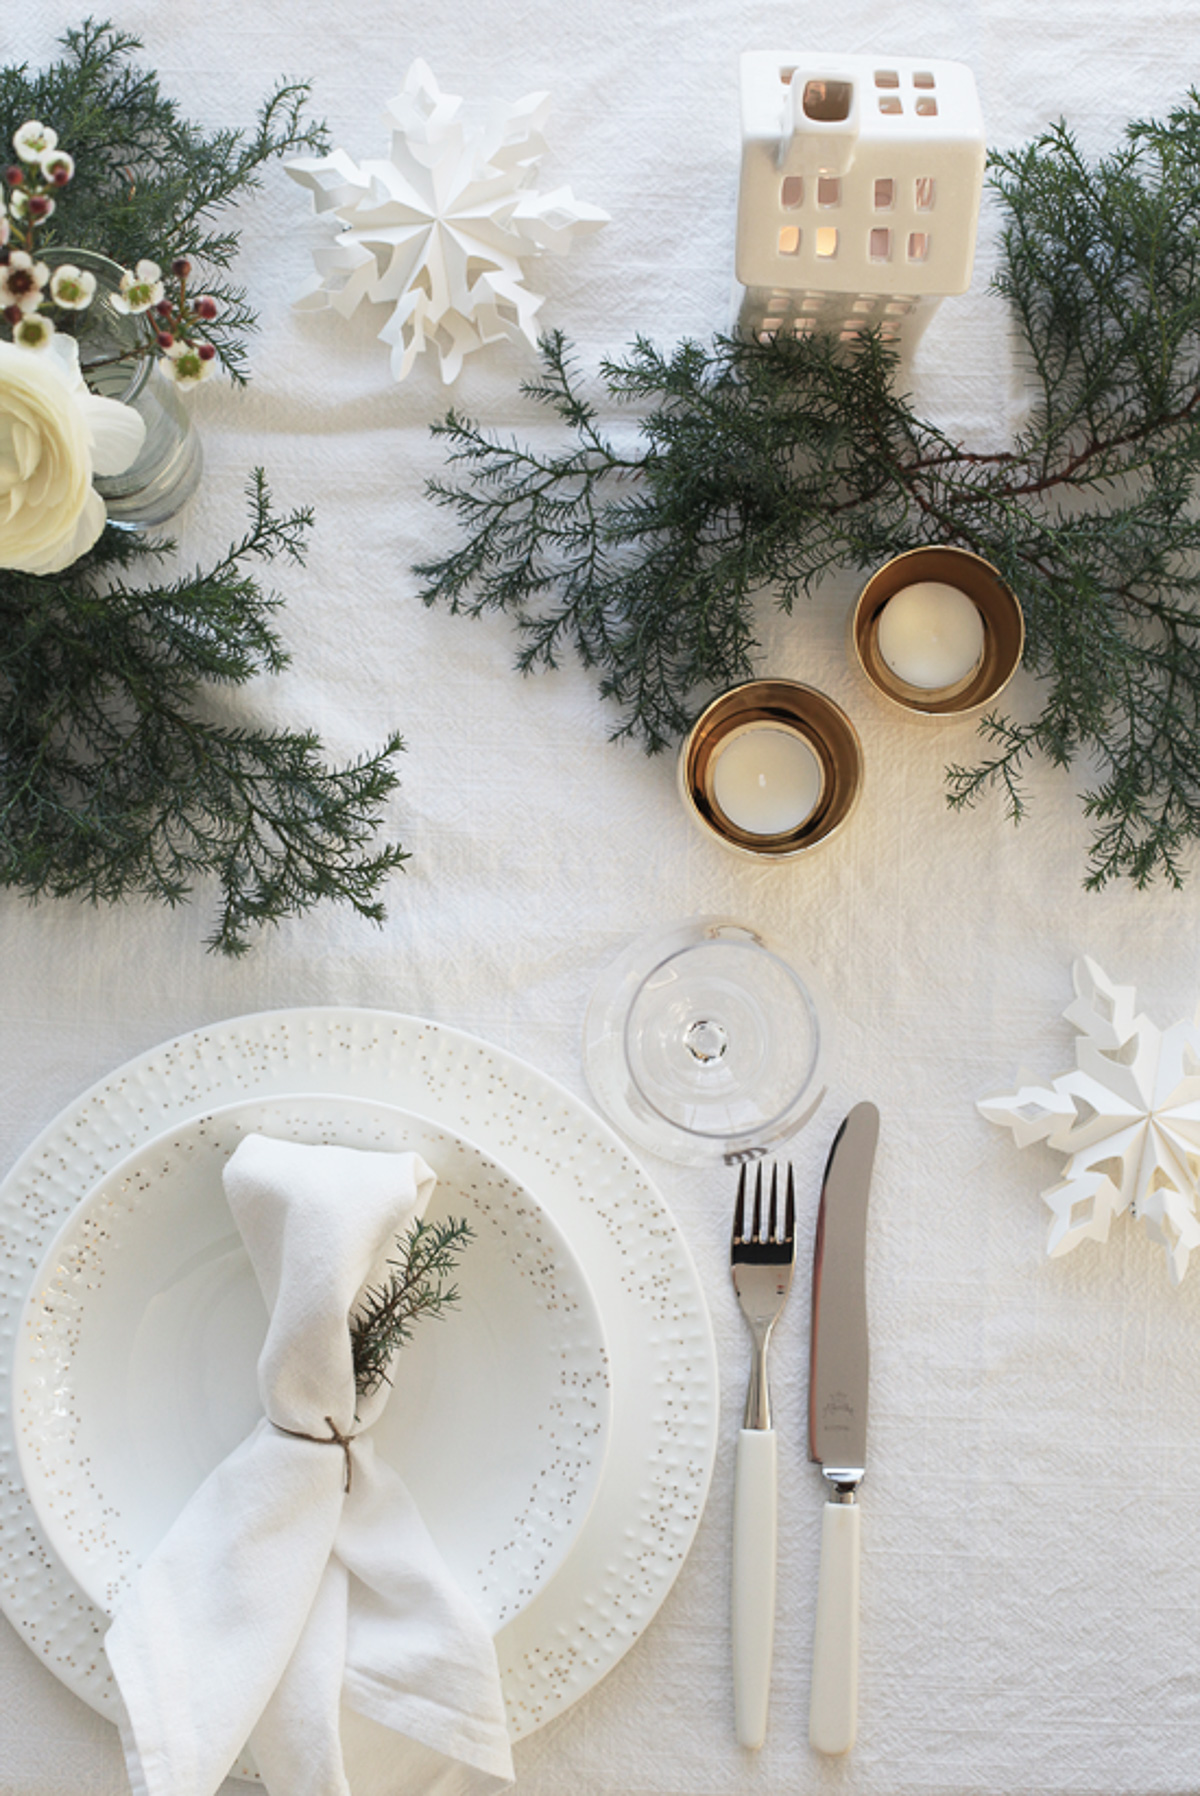 Holiday Table Setting Ideas_Creative Ways To Decorate The Table-11